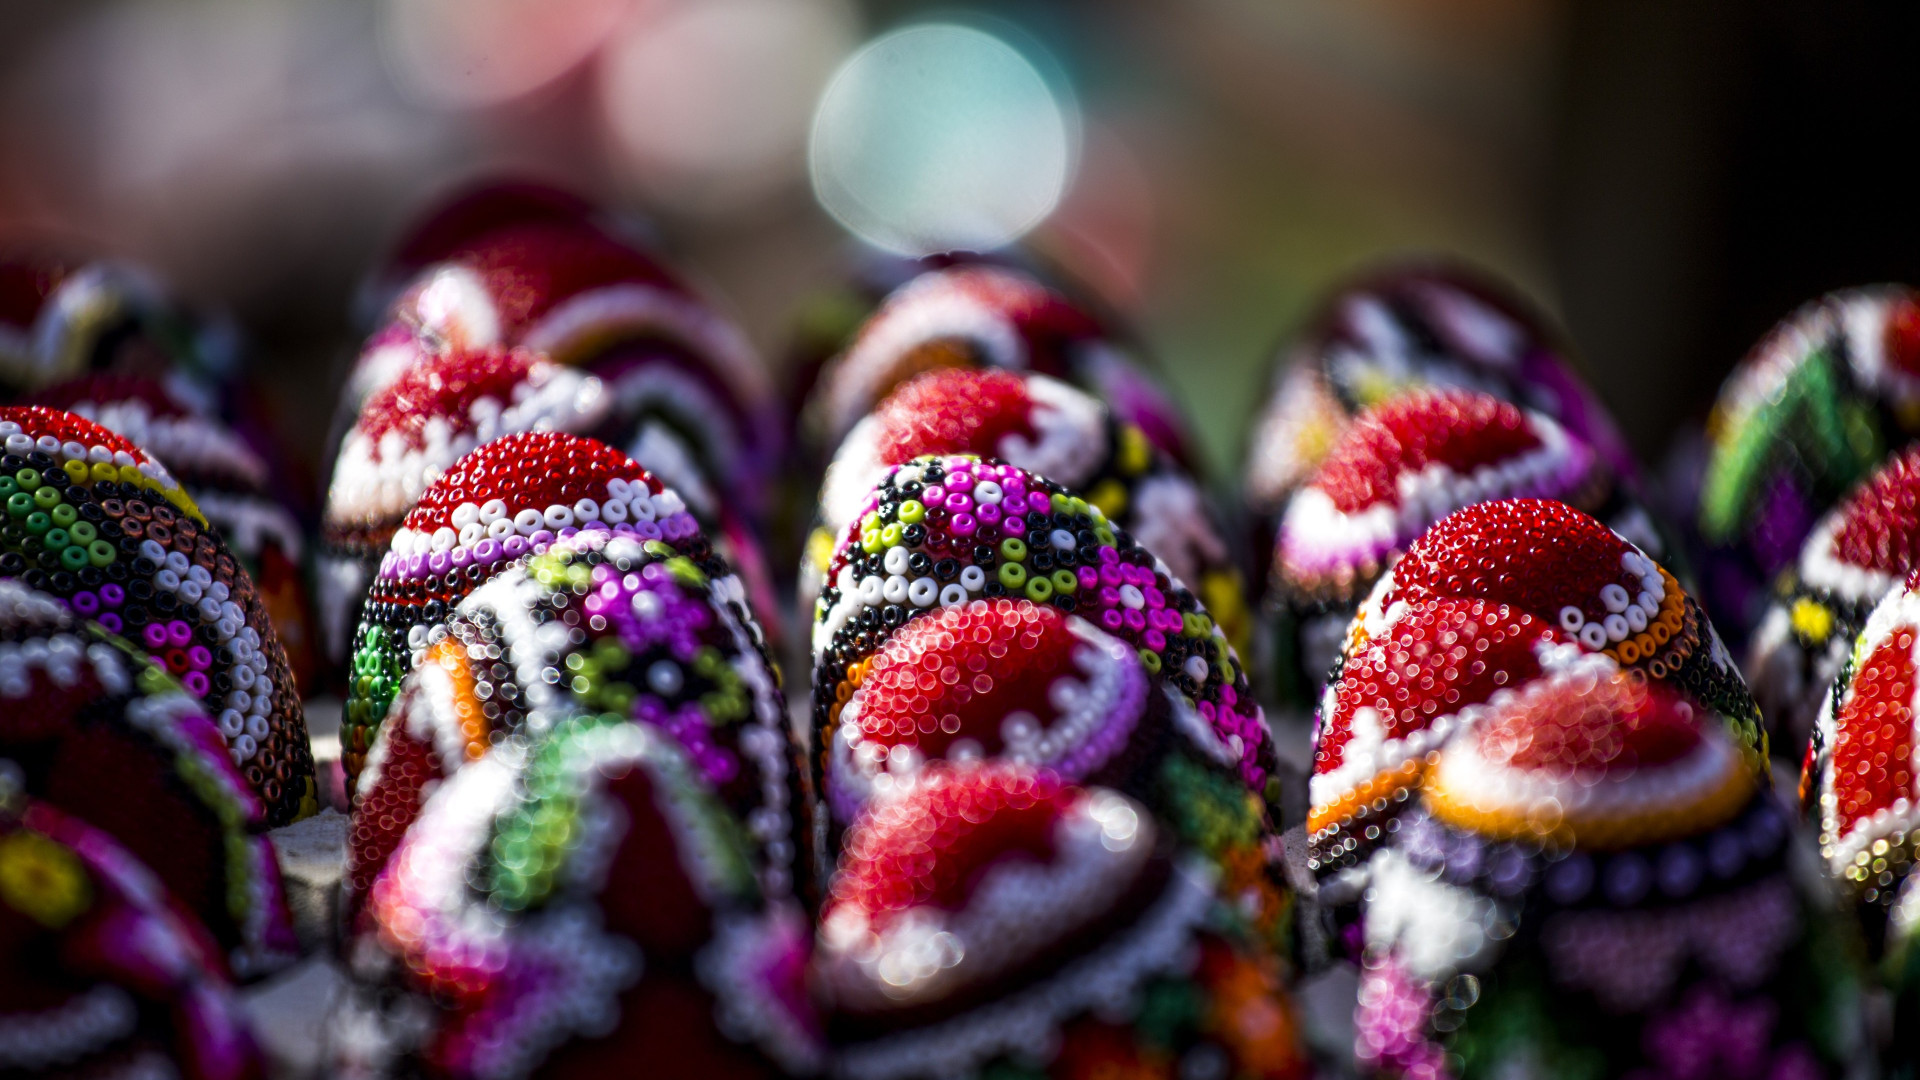 Easter eggs from Bucovina, Romania | 1920x1080 wallpaper